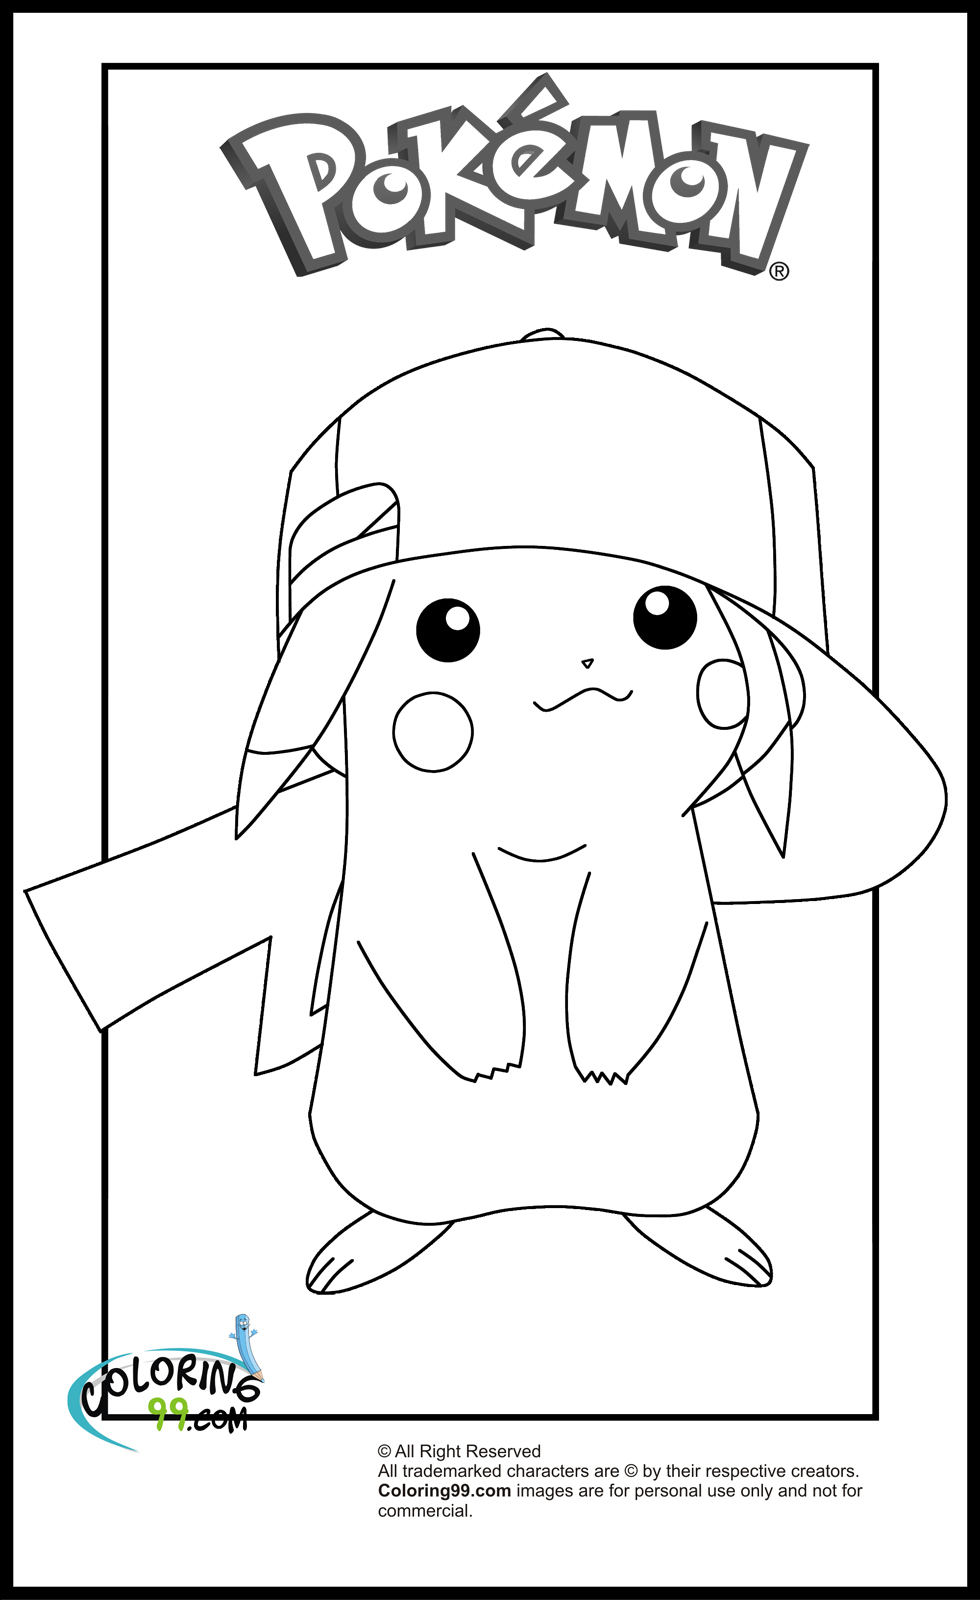 Pikachu coloring pages minister coloring for Pikachu color page